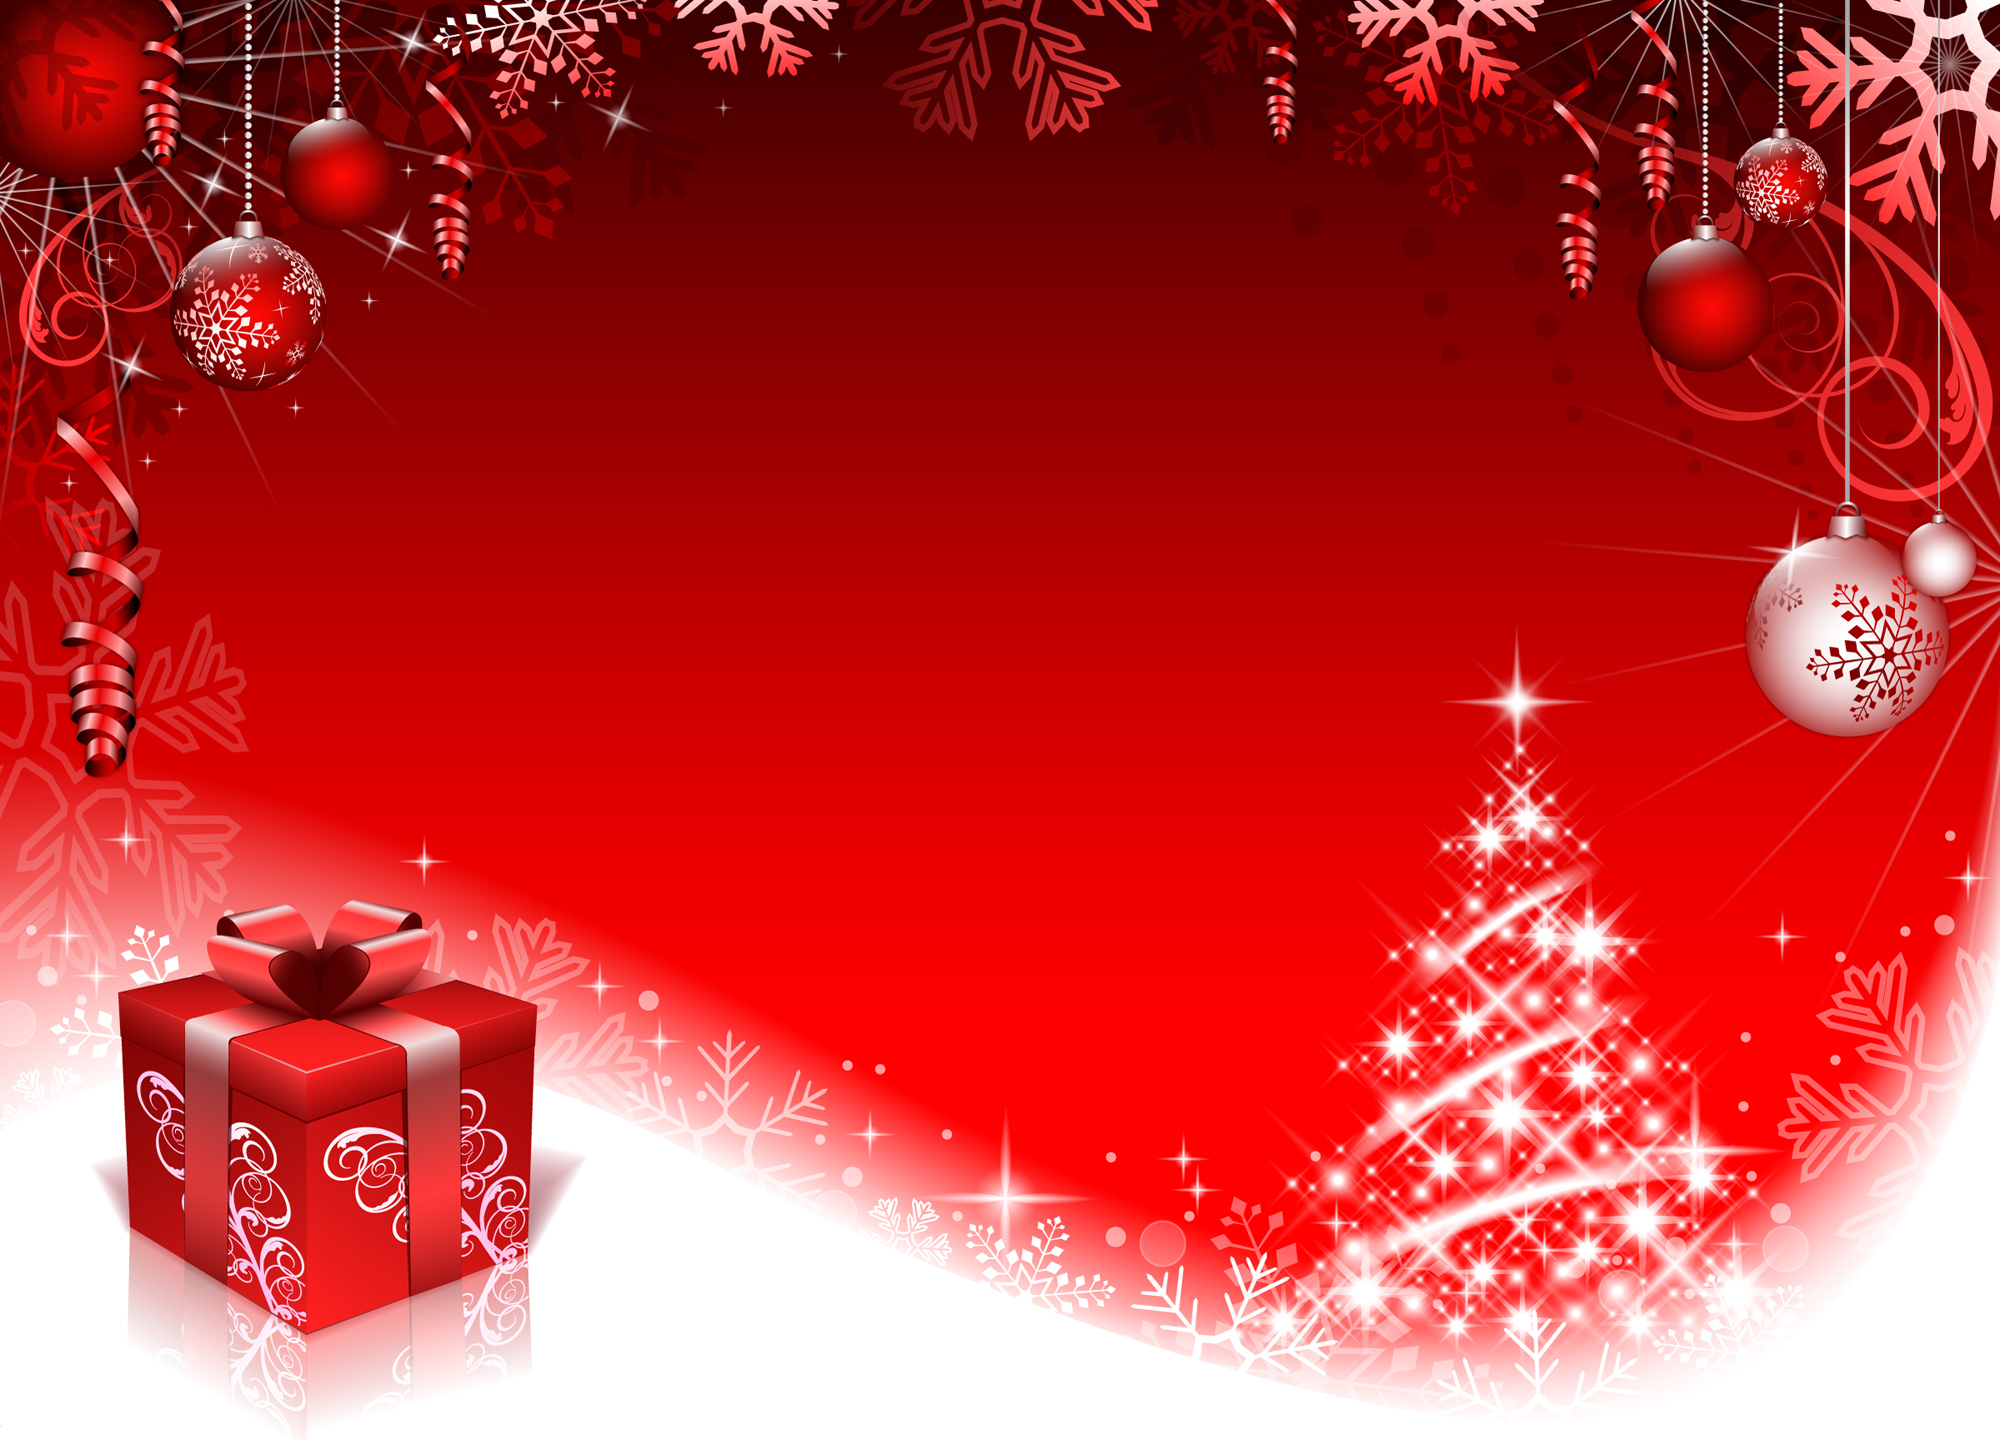 Christmas Backgrounds for Photoshop Wallpapers9 2000x1440